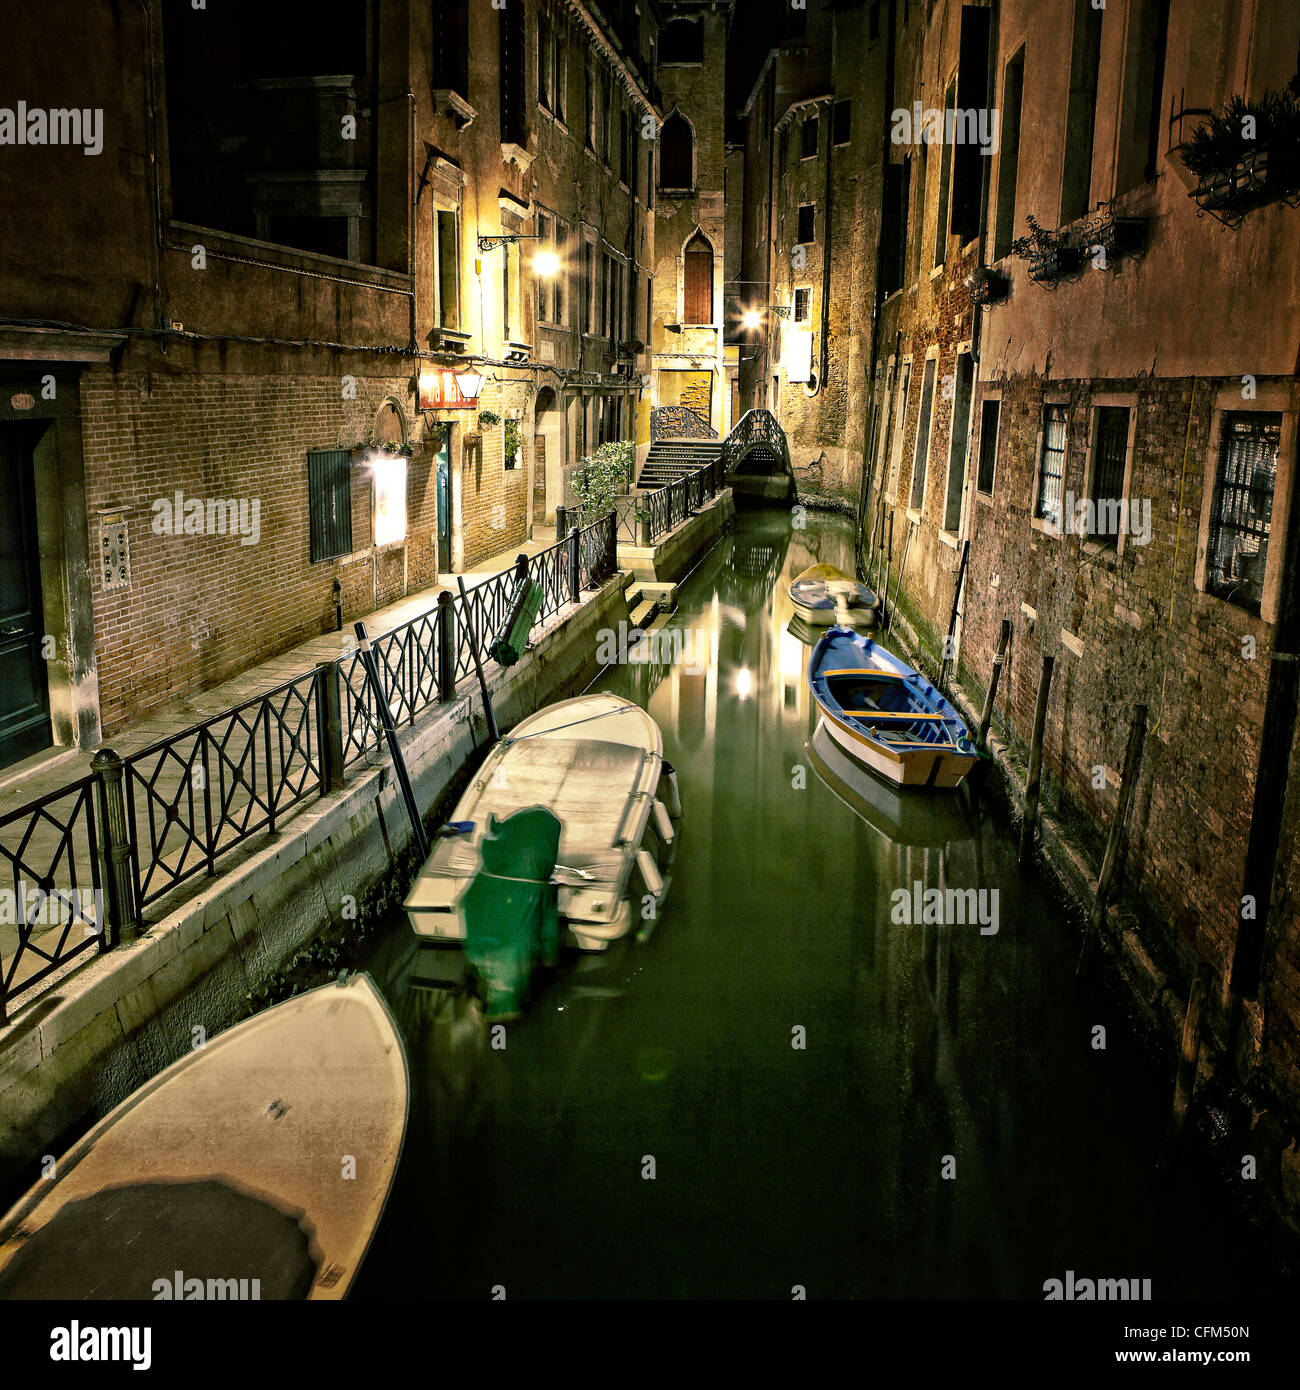 narrow canal in Venice with boats moored - Stock Image